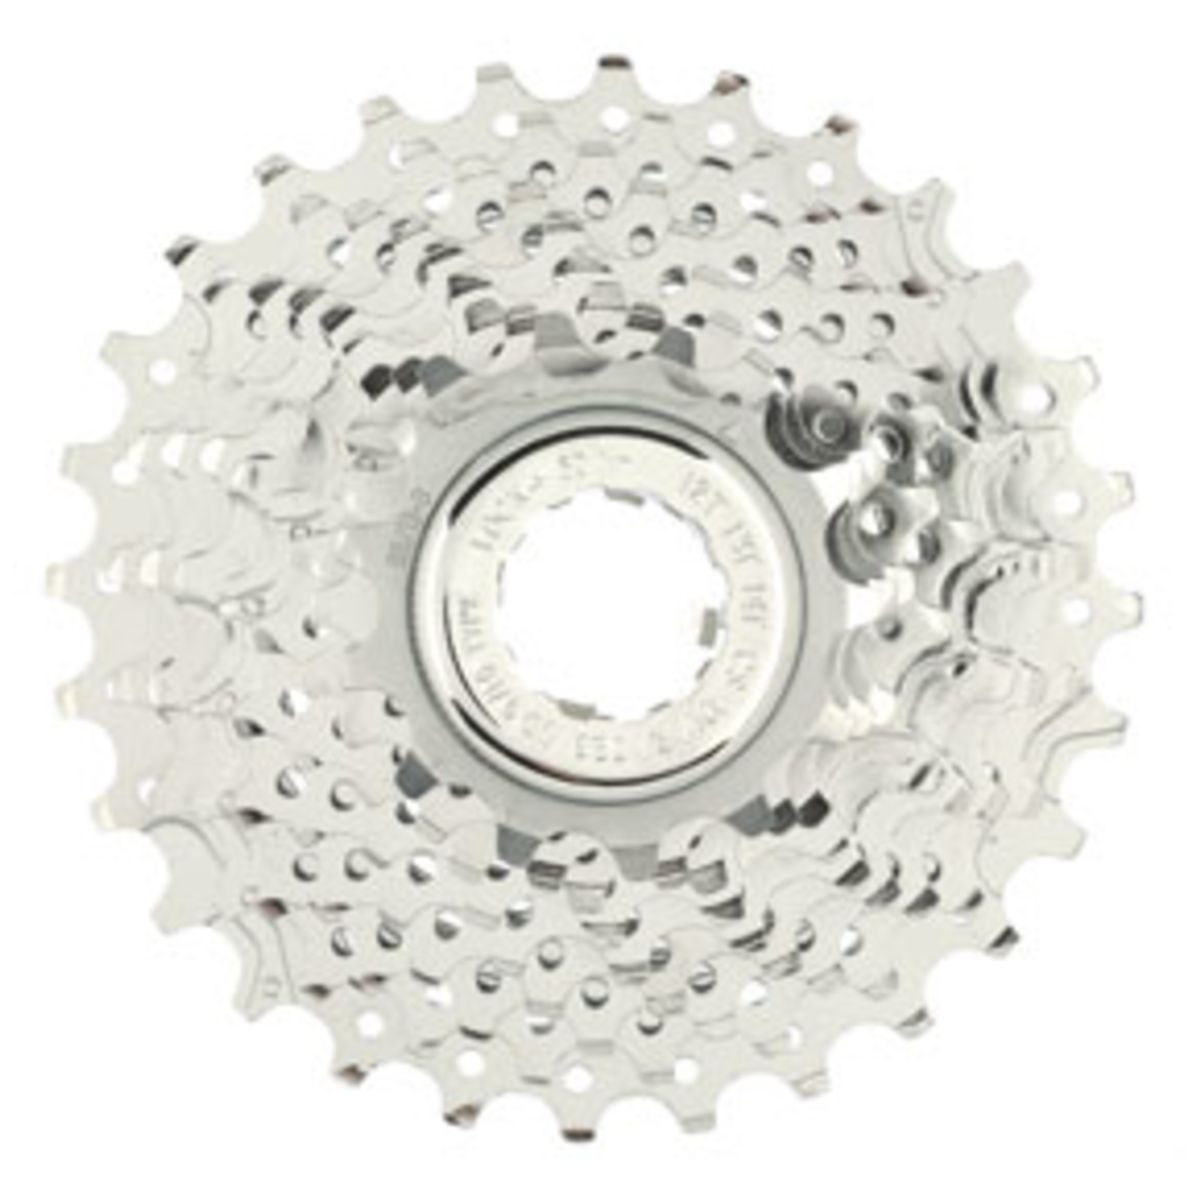 Veloce Ultra-Drive 9-speed cassette 13-28 ratio